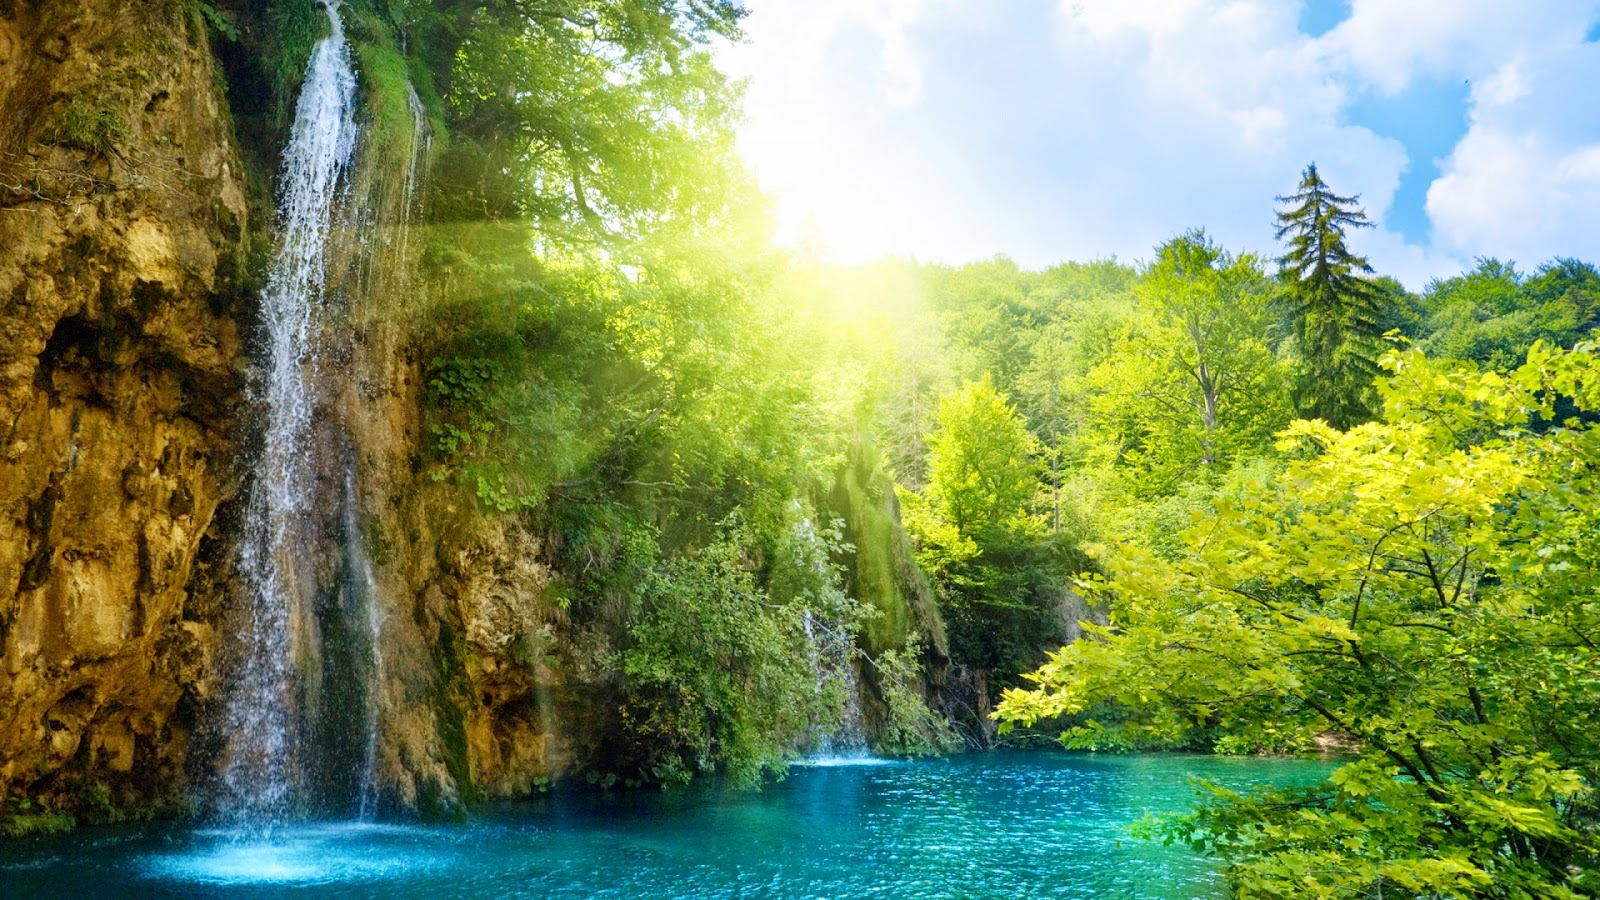 Nature Wallpapers 1080p